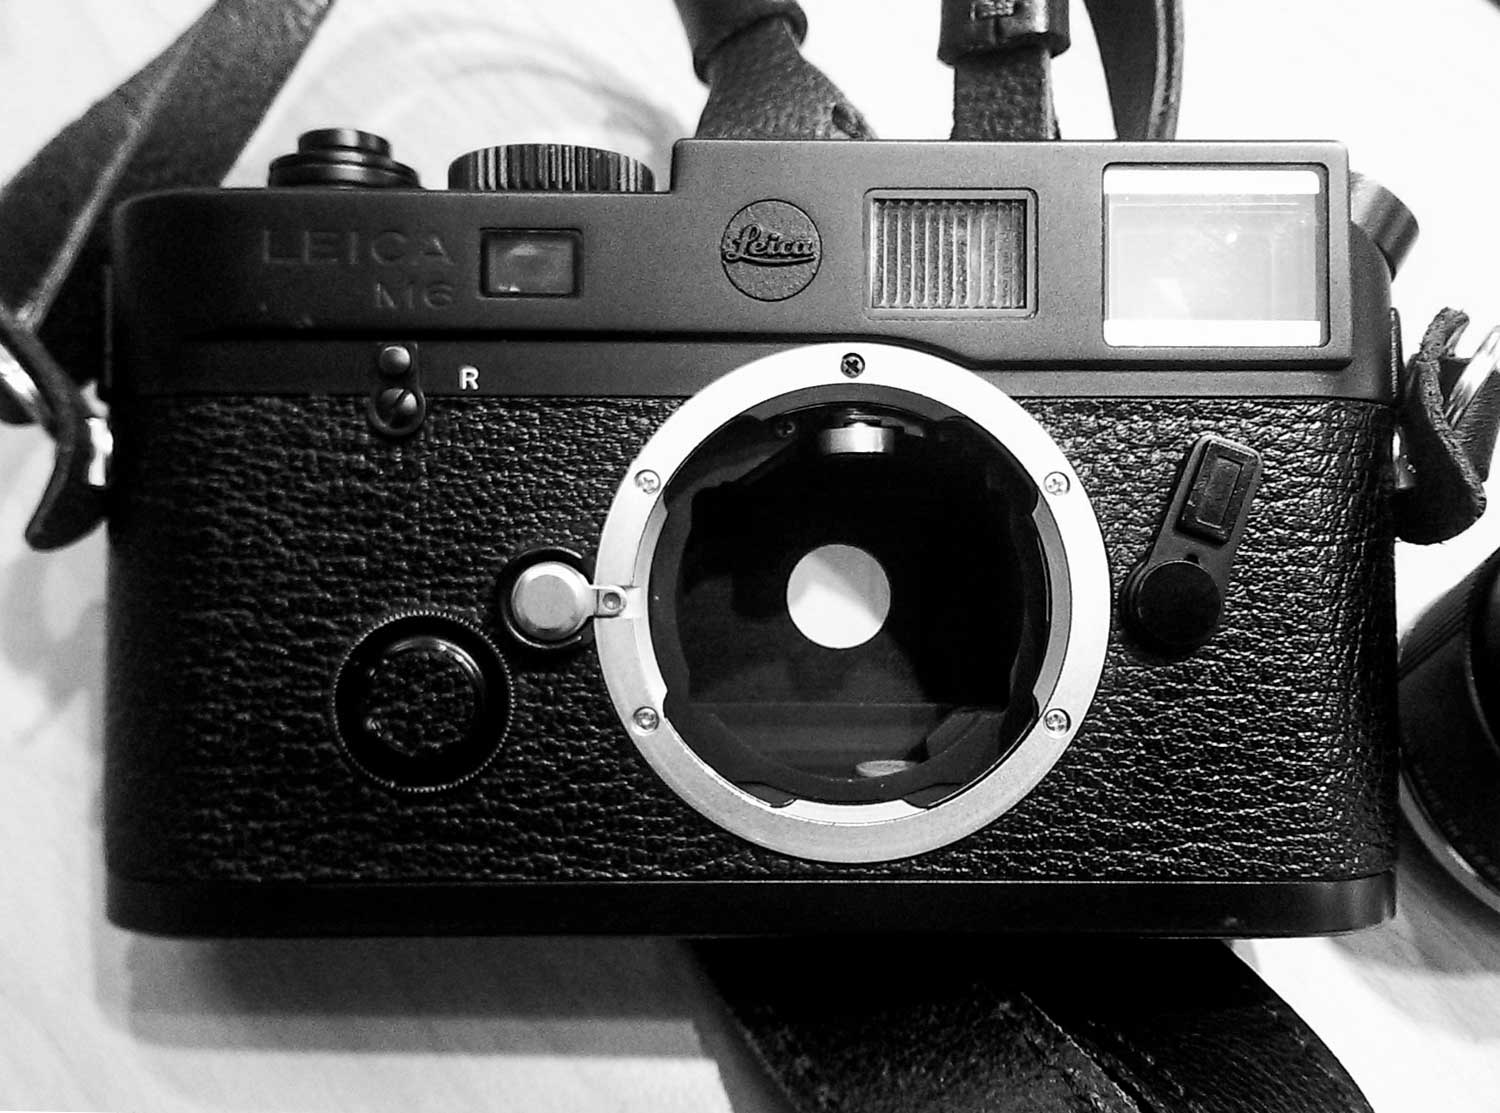 Leica M6 TTL 0.85 all blacked out